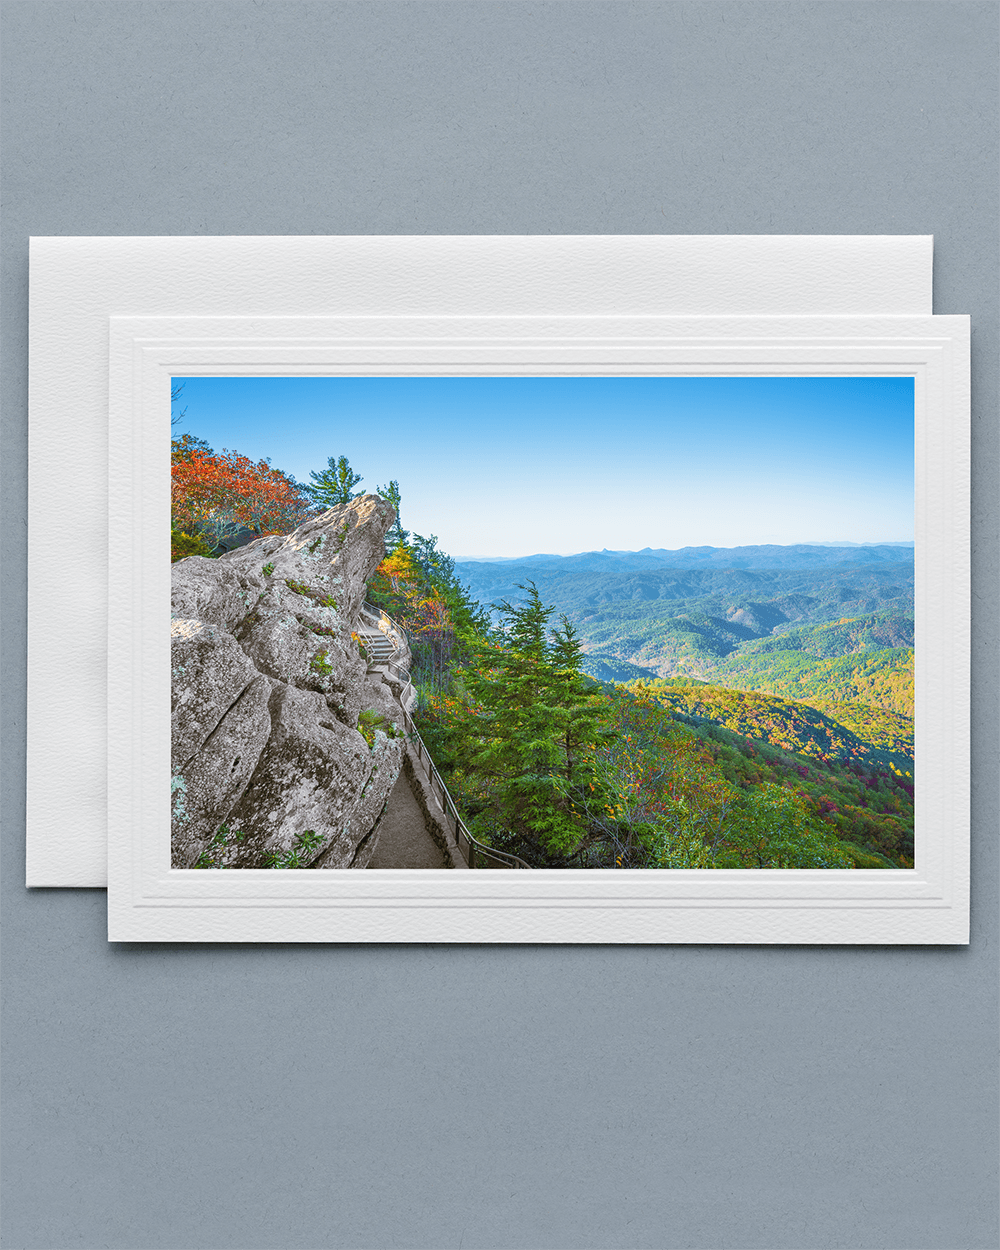 Send a lovely Greeting Card with a real photograph of The Blowing Rock - All Greeting Cards are handmade by us in the U.S.A.